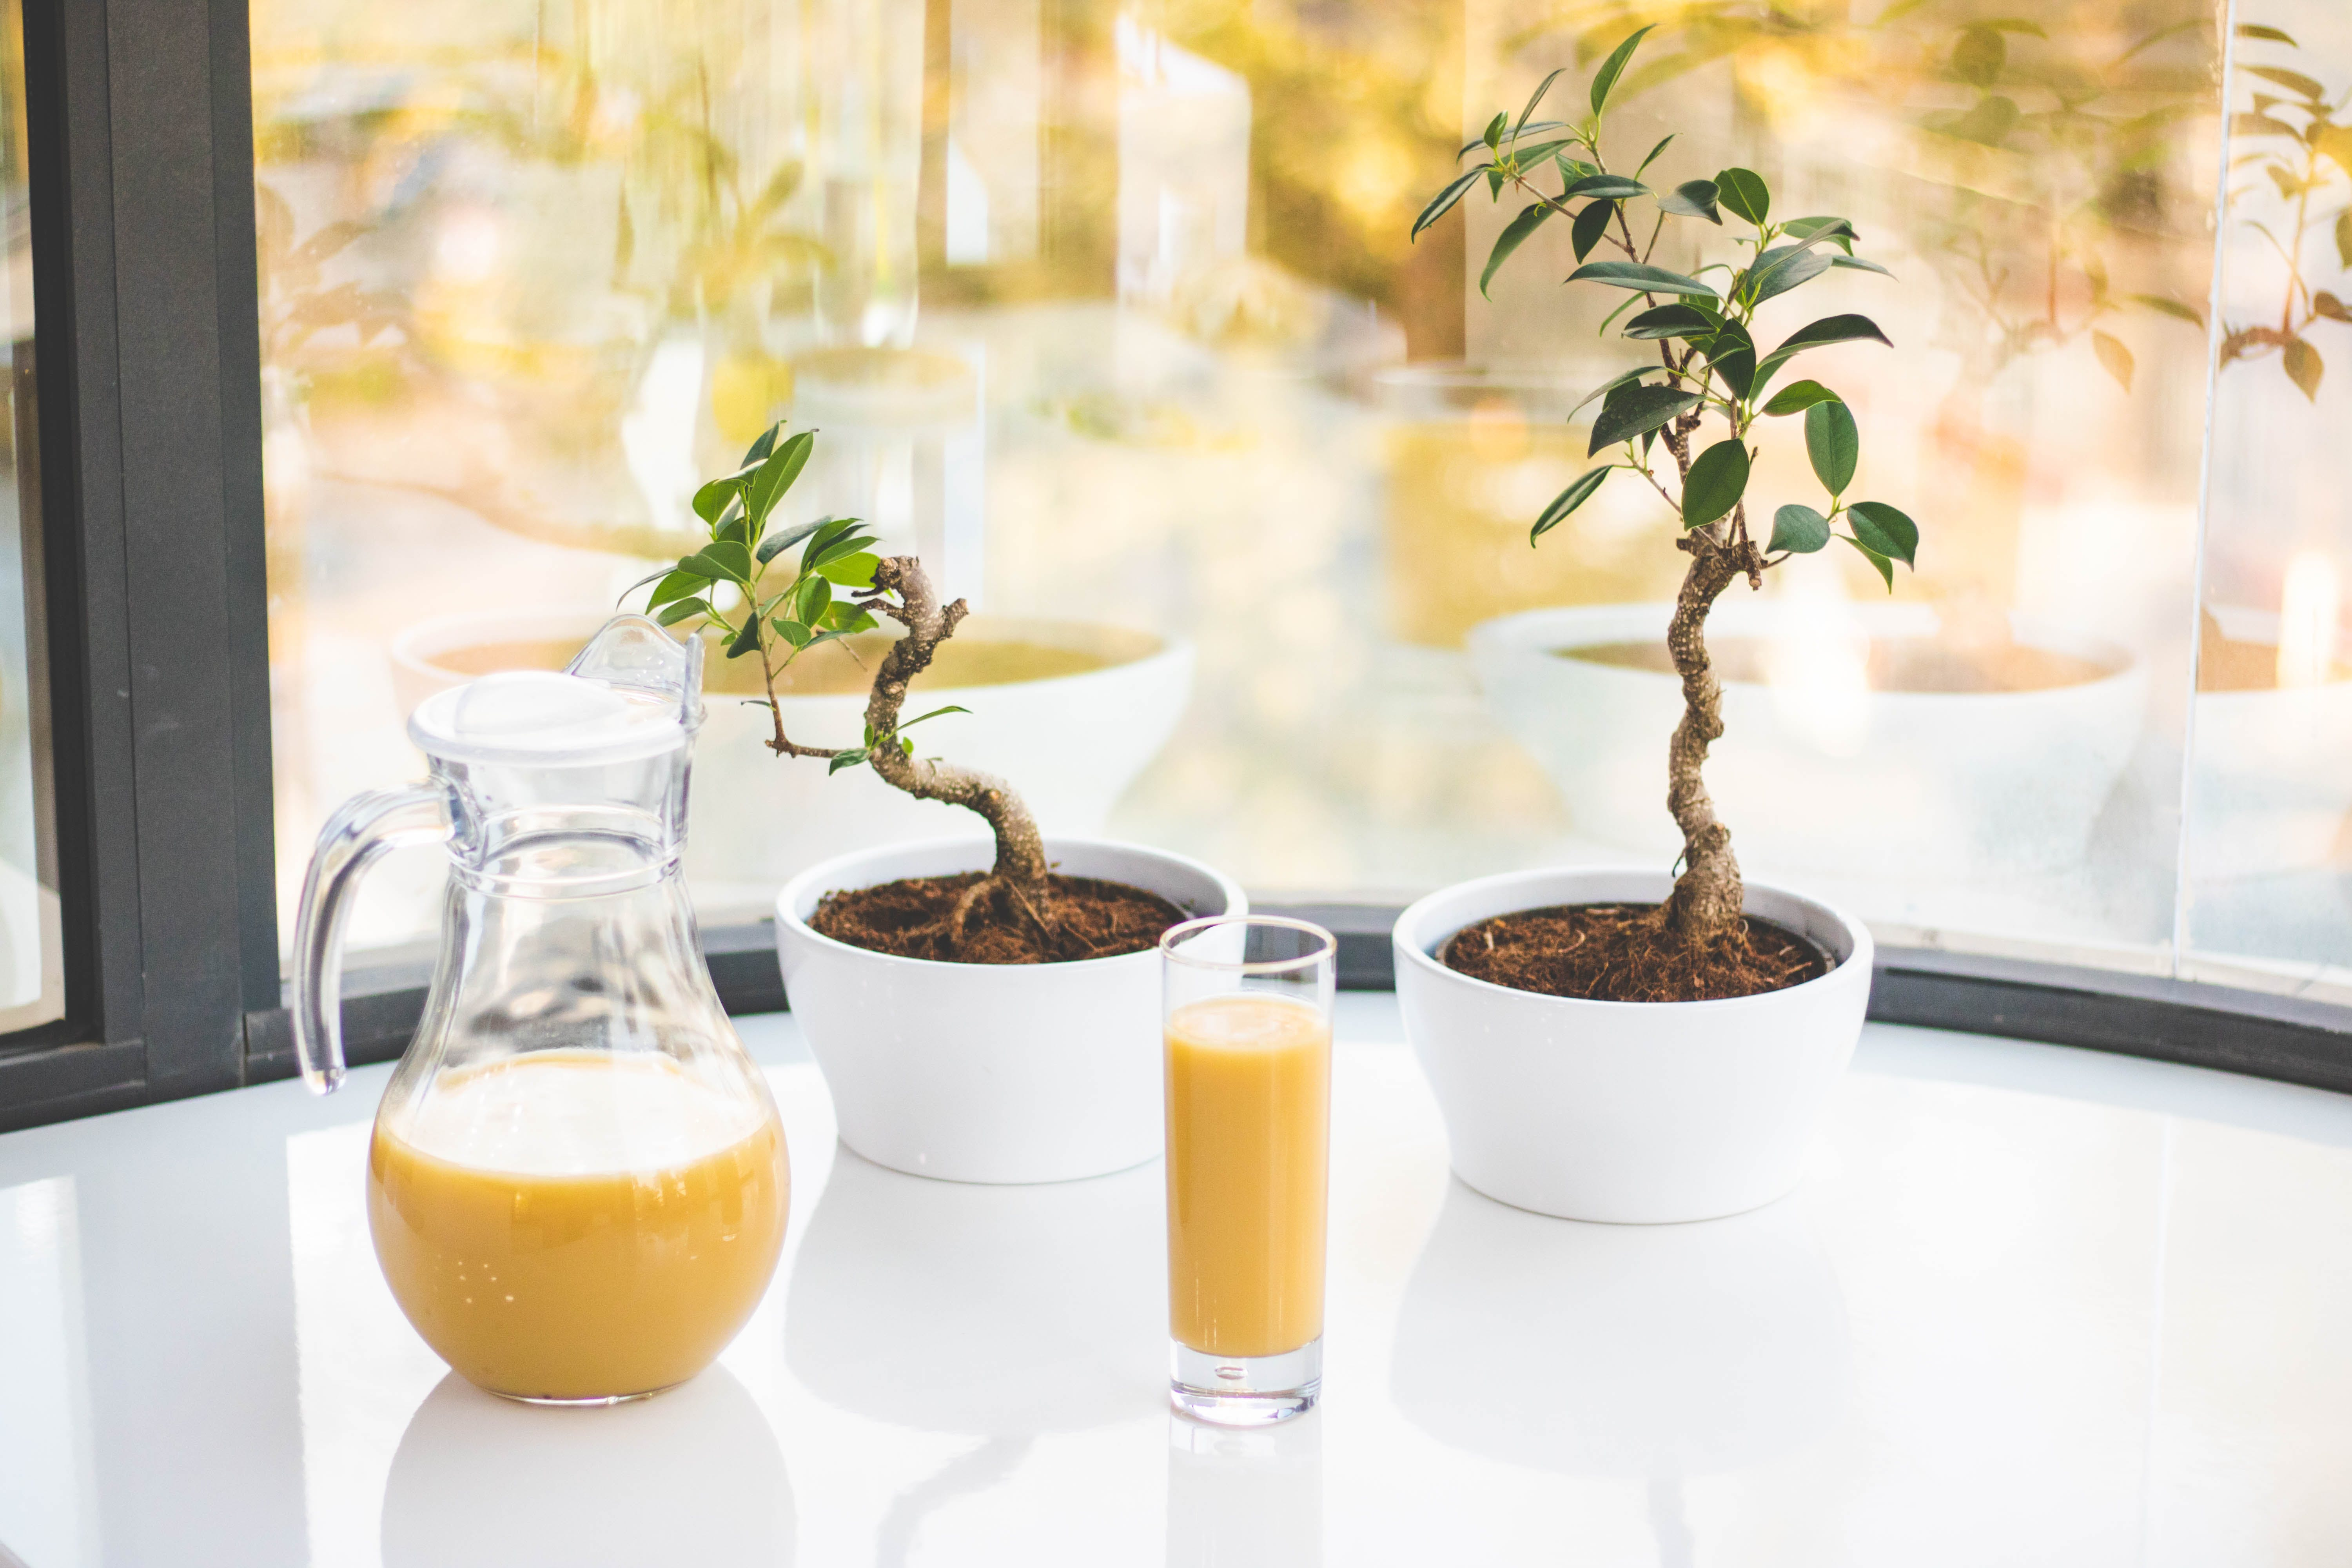 Two Green Leaf Potted Plants On White Table